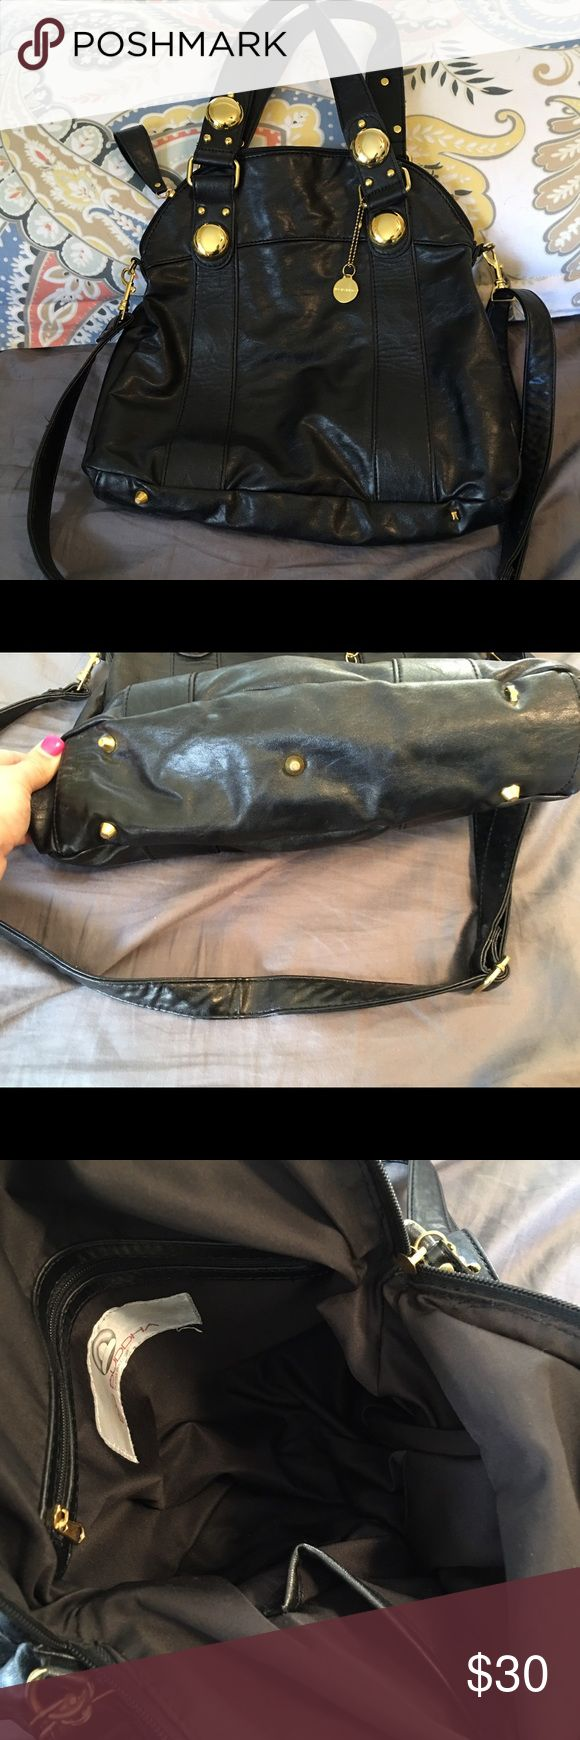 Big Buddha bag Black with gold accents. Long strap comes with it. No flaws! Big Buddha Bags Satchels